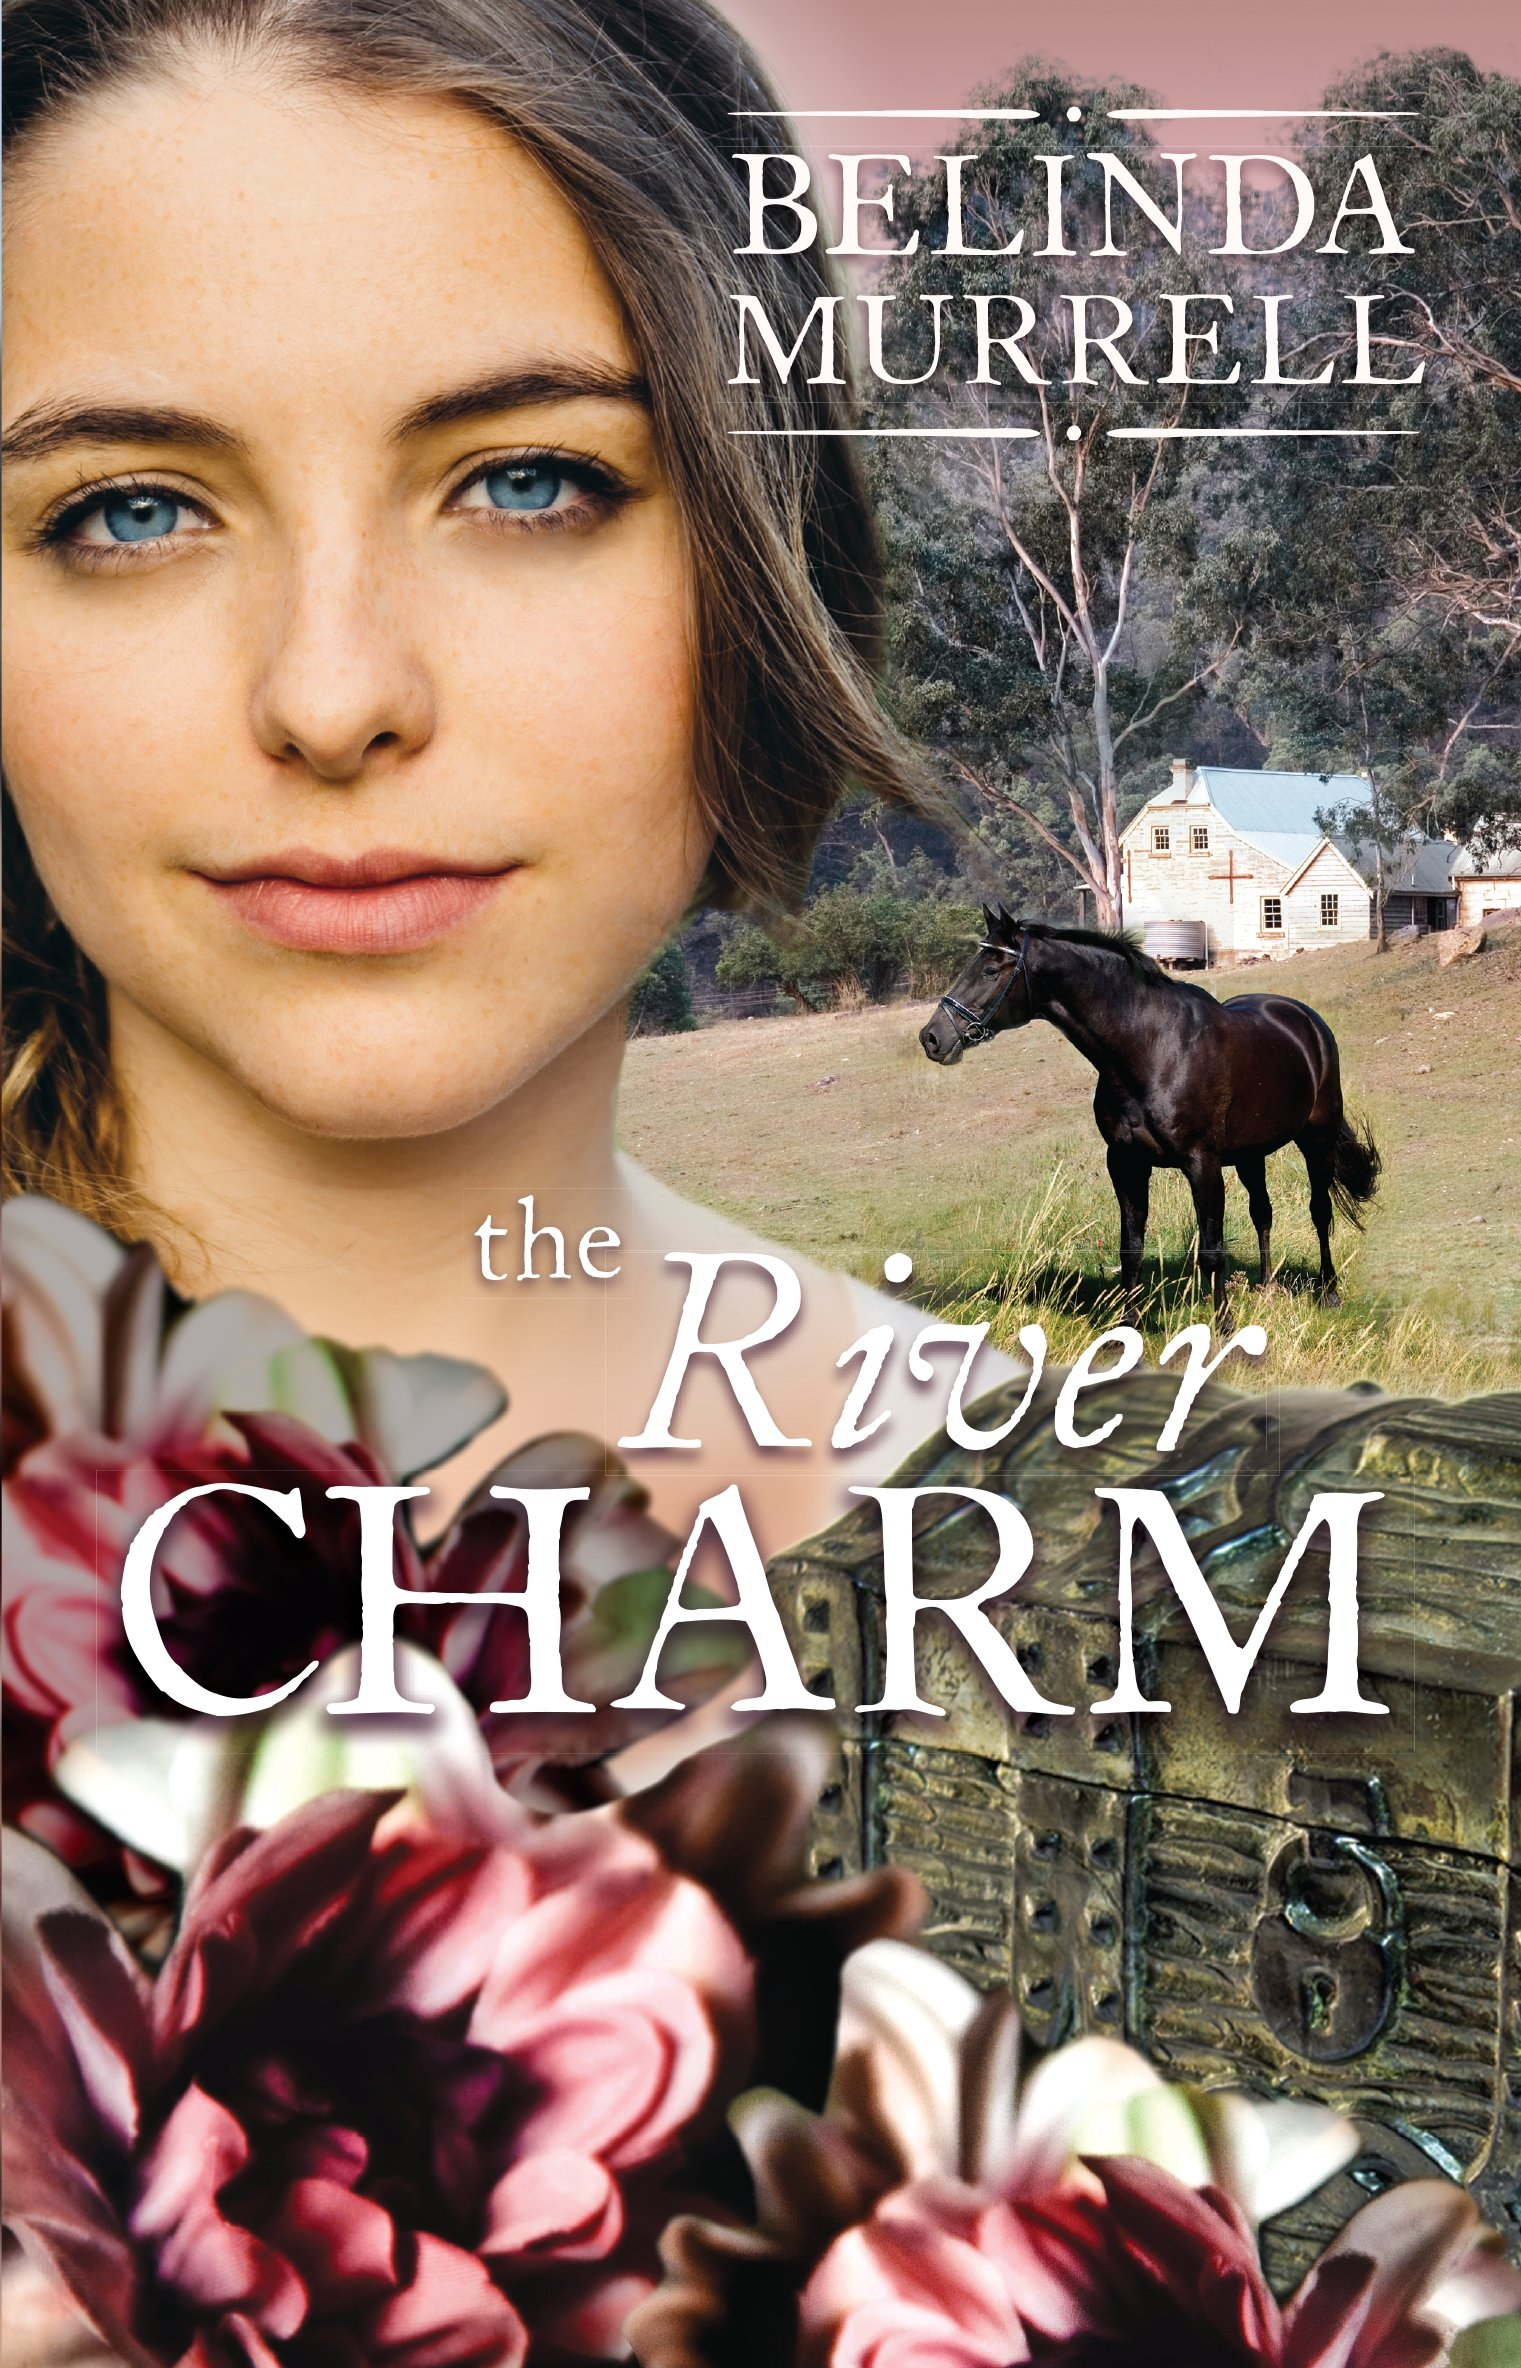 The River Charm